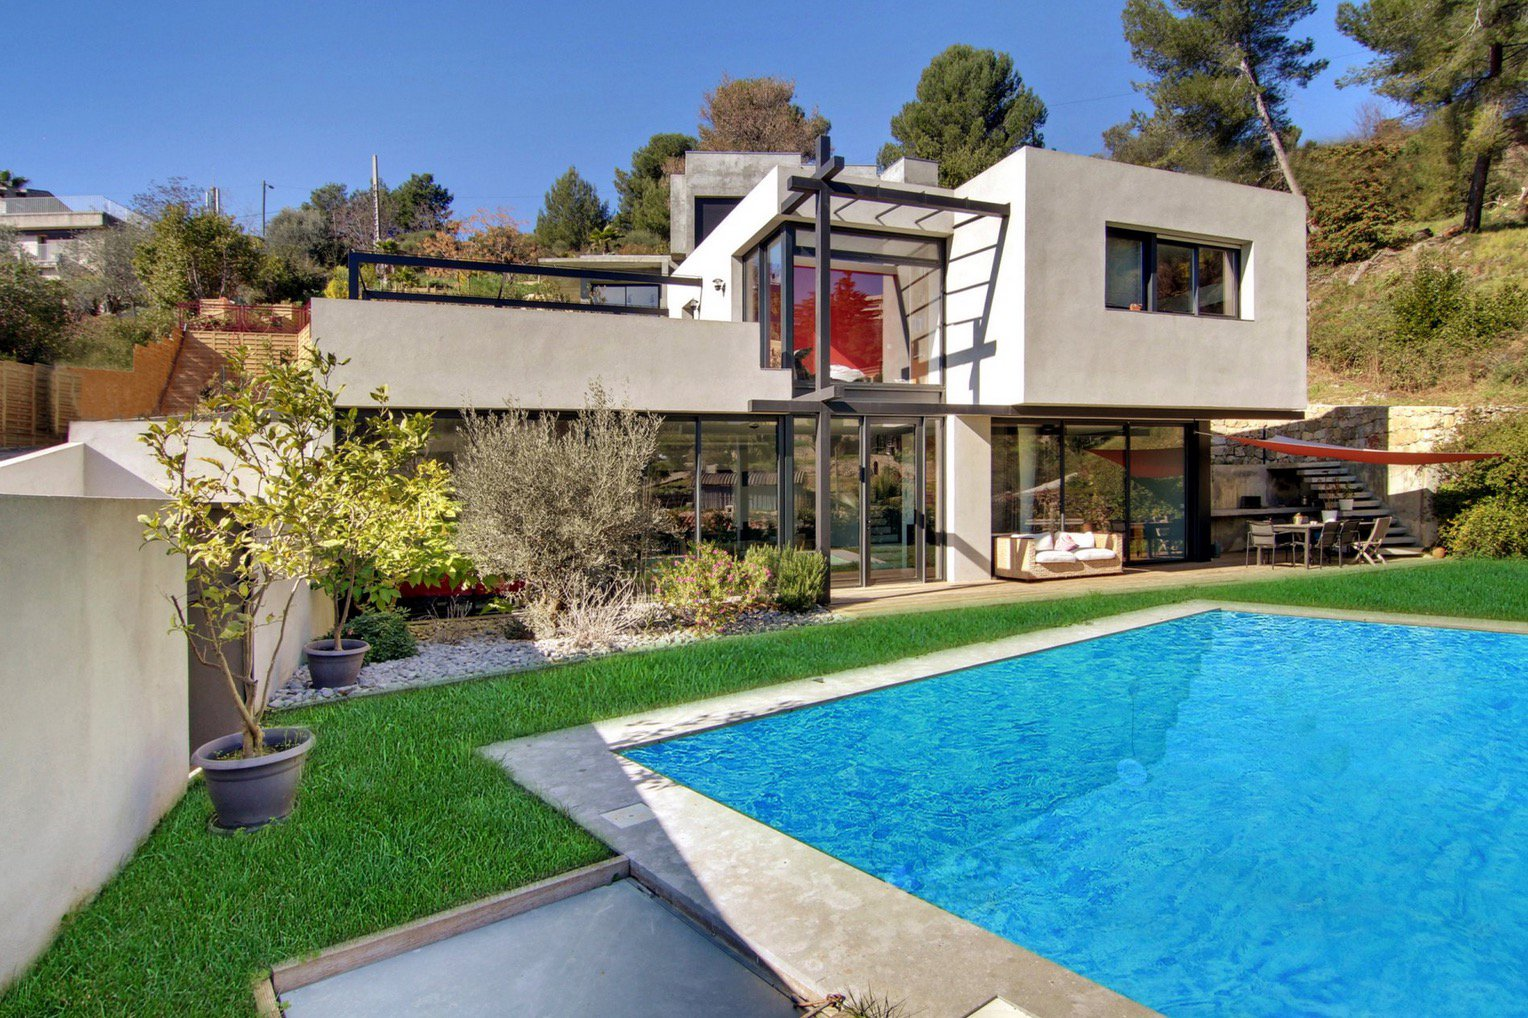 Le Cannet, modern and spacious villa with swimming-pool